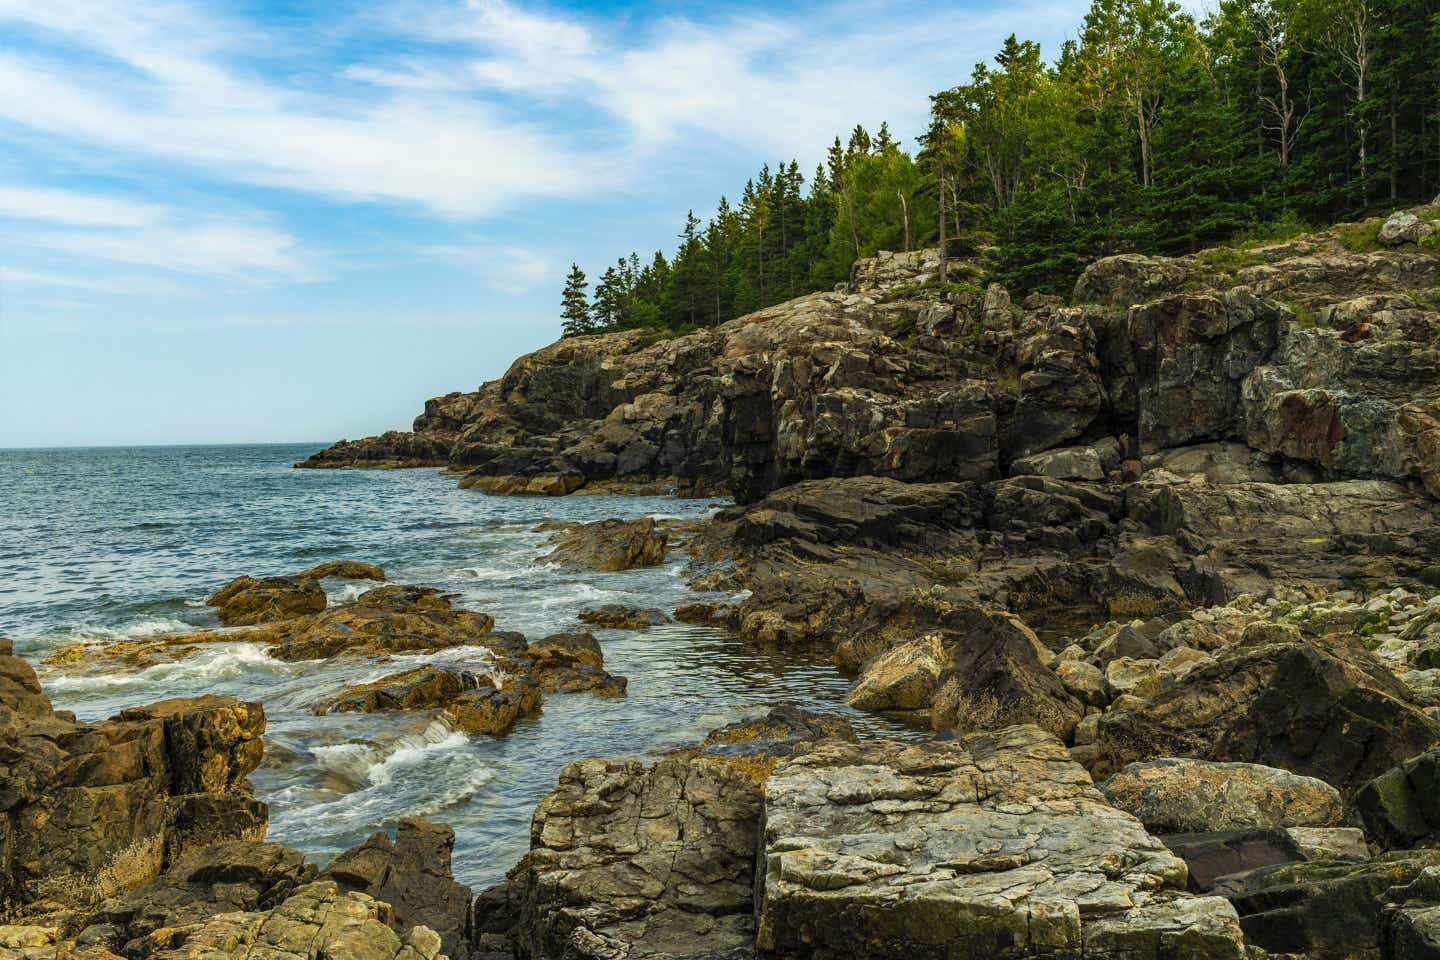 Acadia National Park with pine trees and rock formations near the coastline.